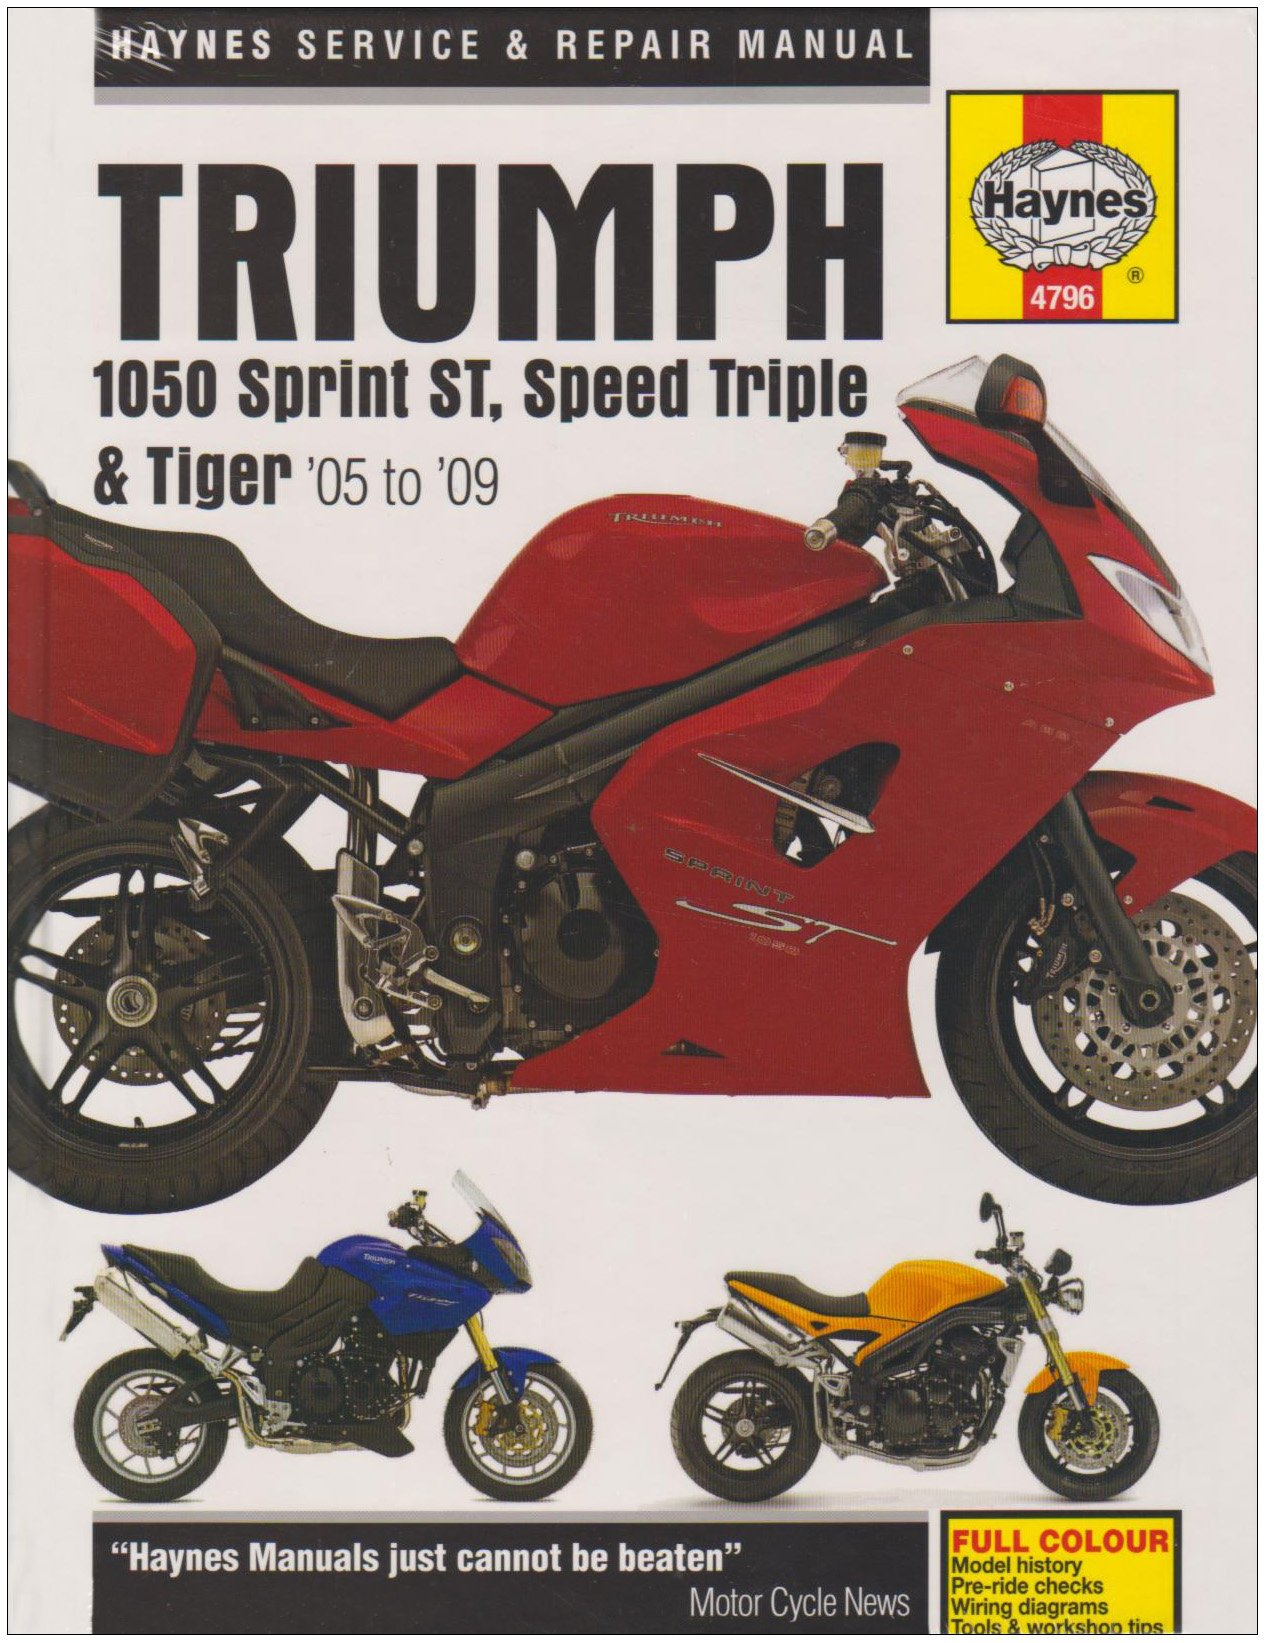 Triumph 1050 Service and Repair Manual: 2004 to 2009 (Haynes Service and Repair  Manuals): Matthew Coombs: 9781844257966: Amazon.com: Books